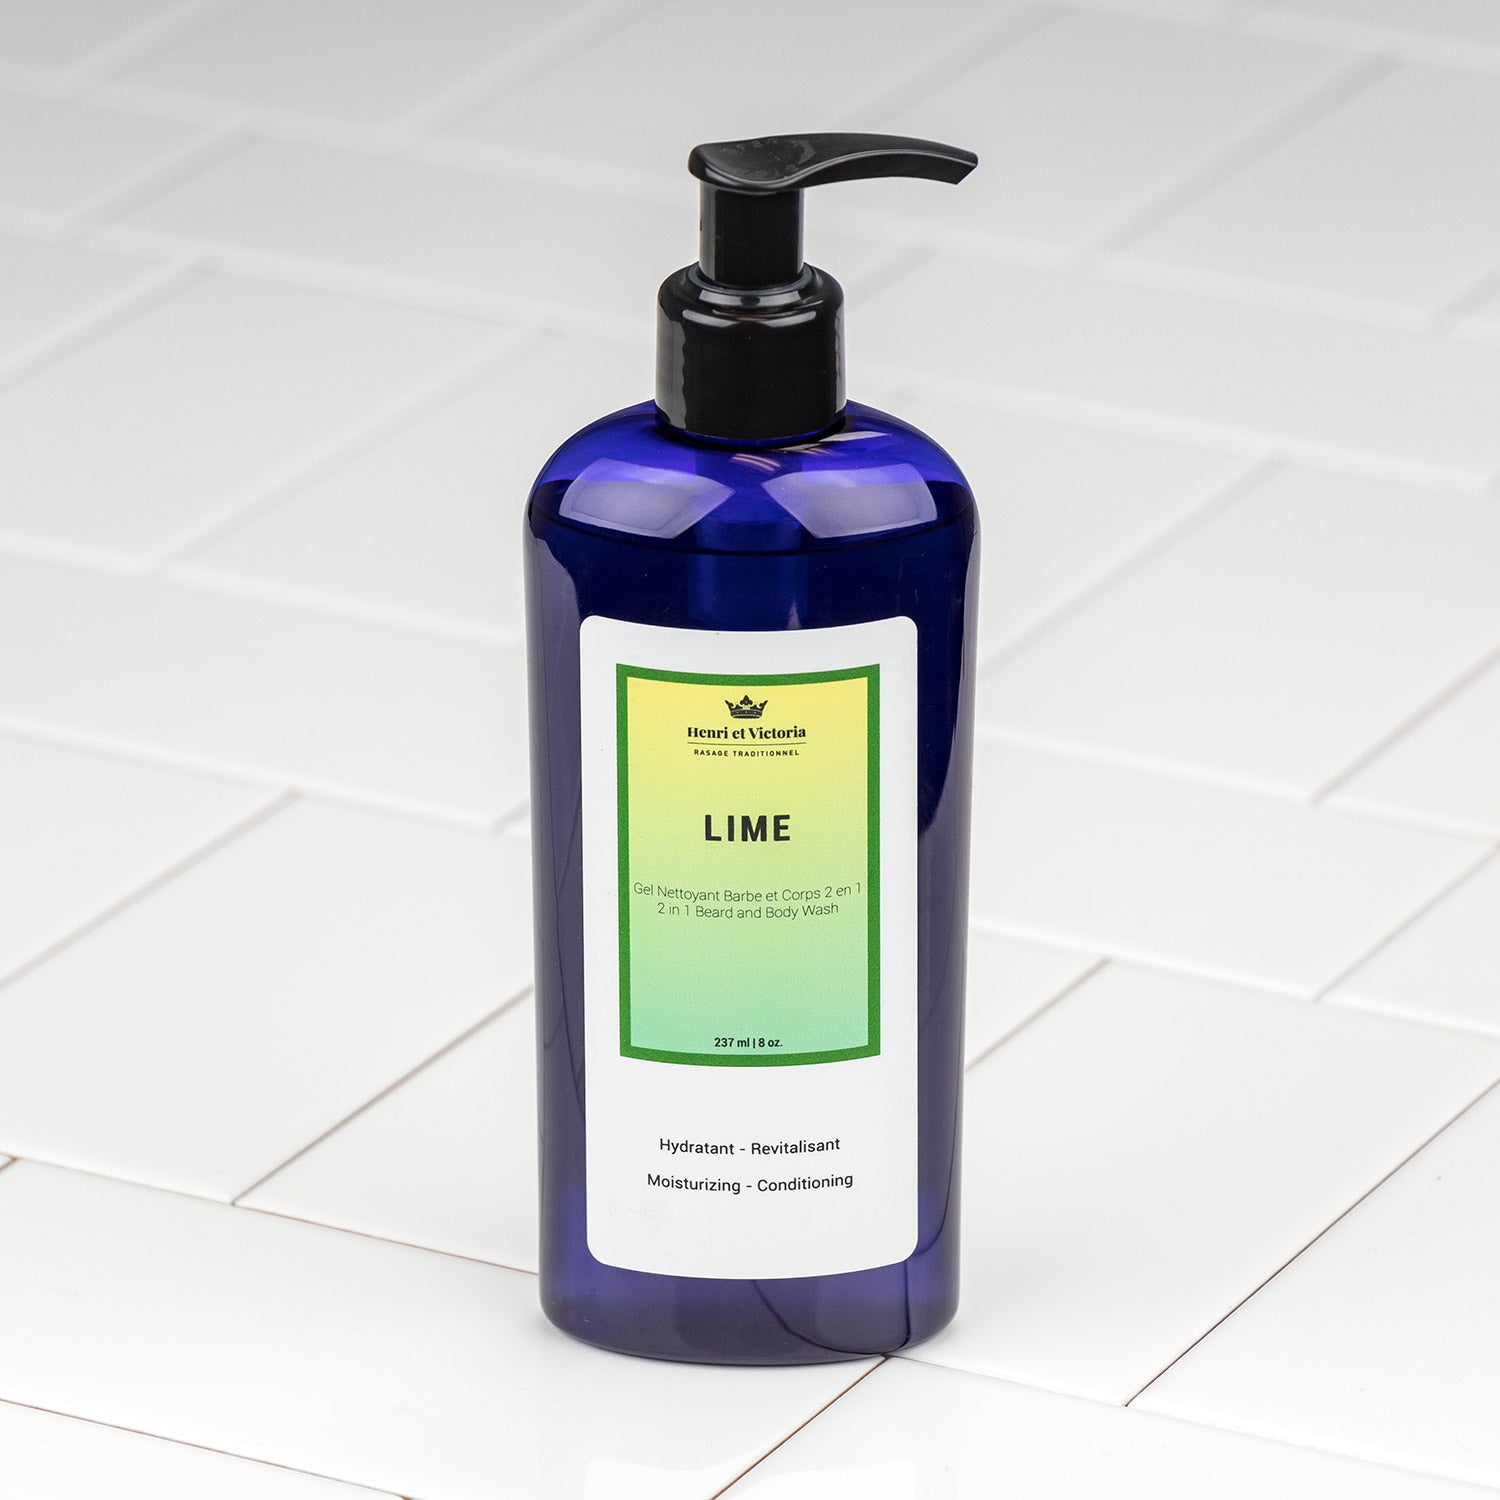 Henri et Victoria - Lime Body and Beard Wash 8oz